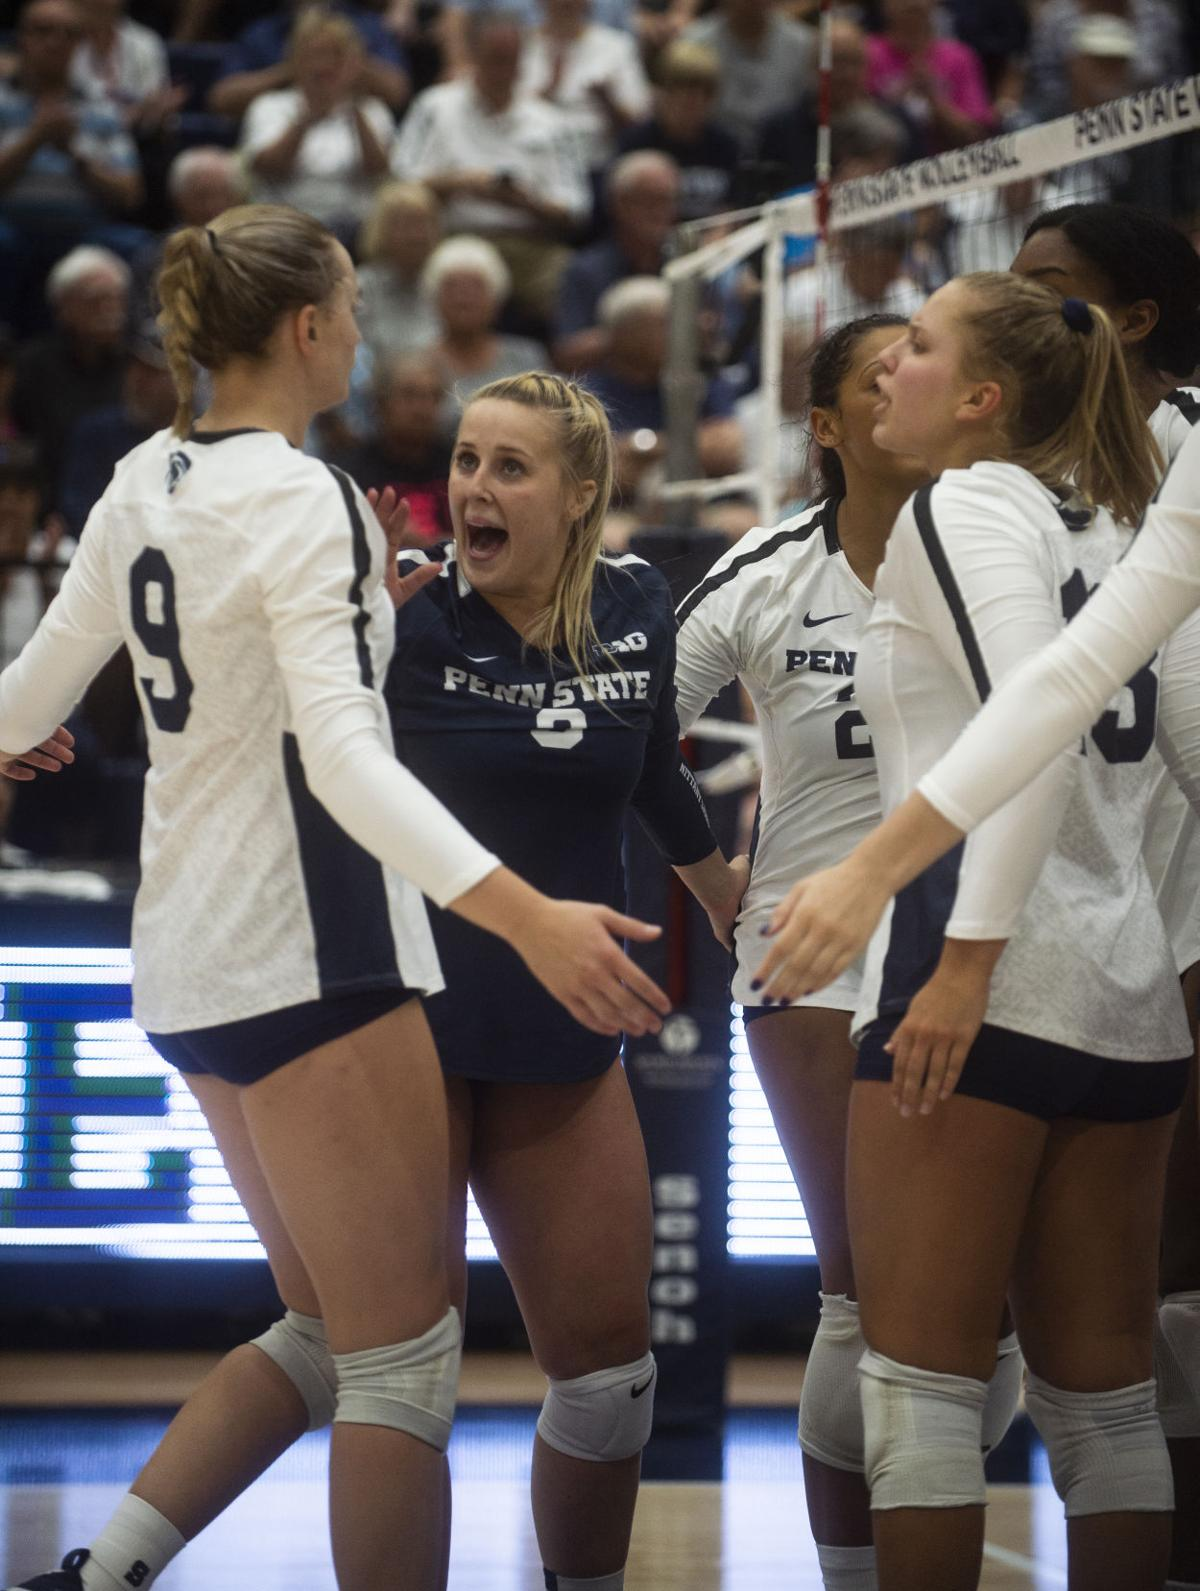 Women's Volleyball vs. Hofstra, Team Celebrates